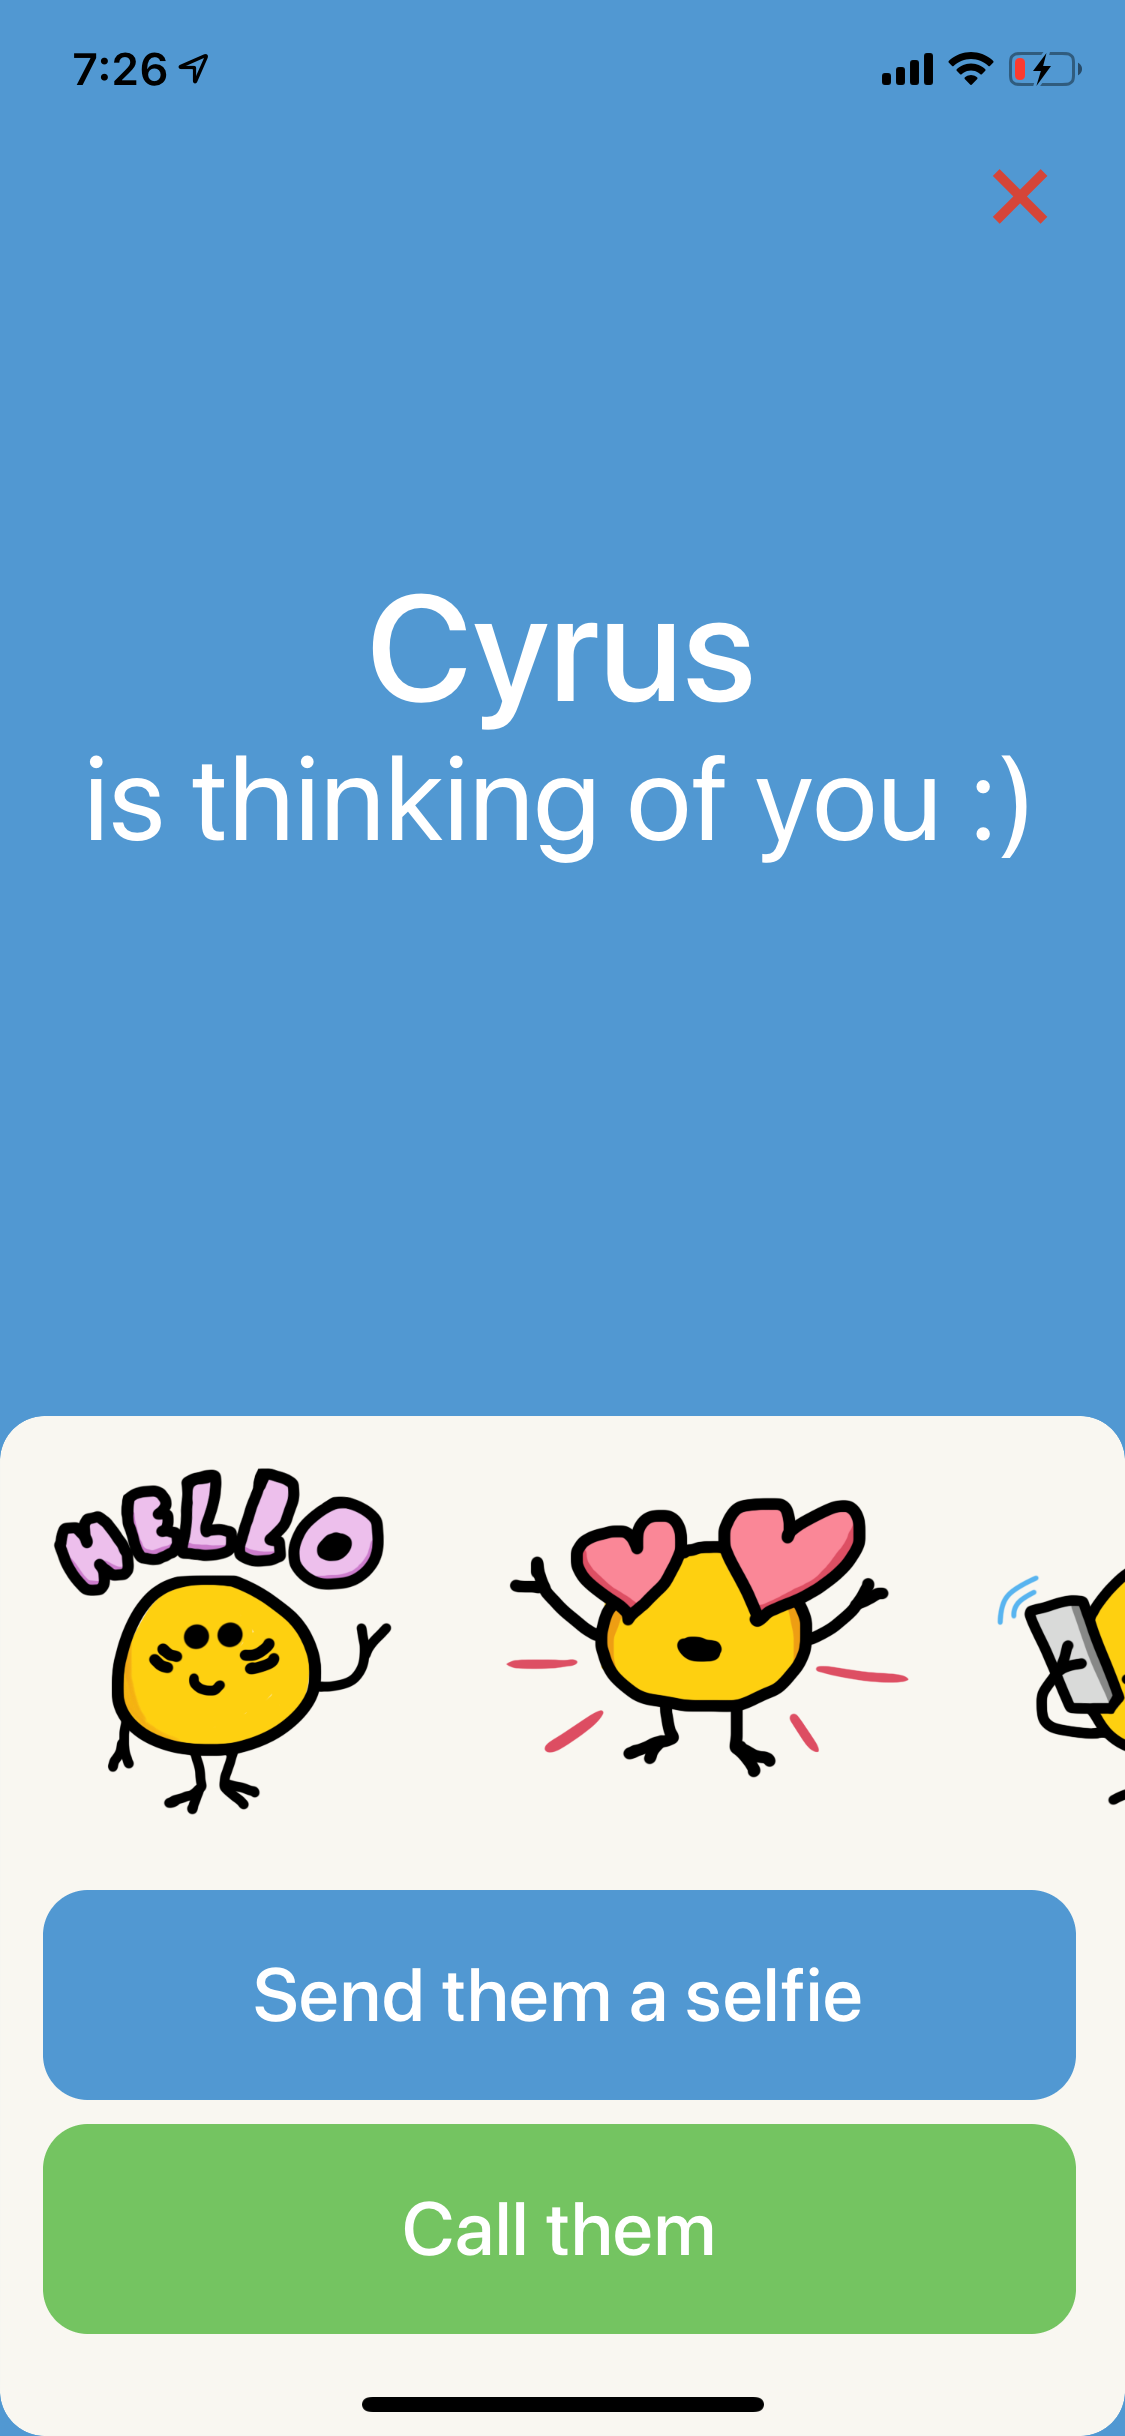 Screenshot of an iOS app with the prompt 'Cyrus is thinking of you :)' followed by options to select friendly stickers, send them a selfie or call them